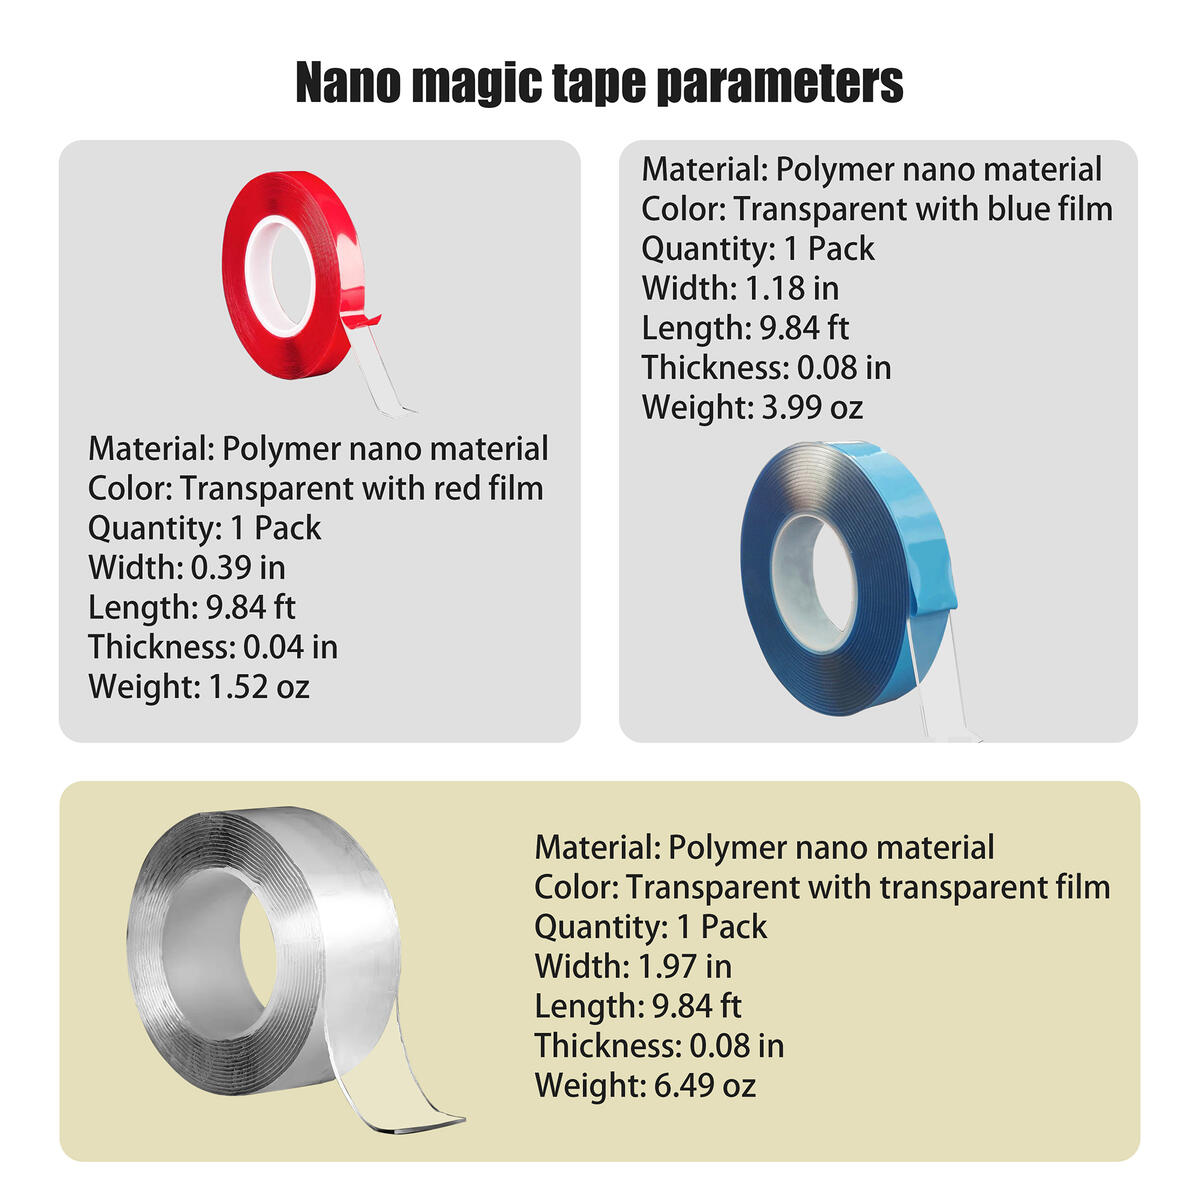 Nano Magic Double Sided Tape 4pcs Set-3 Size Heavy Duty Tapes and 1 Ceramic Folding Knife,Traceless,Reusable,Washable,Seamless,Transparent Removable Gel,Mounting Adhesive,Sticky Strips,Multipurpose